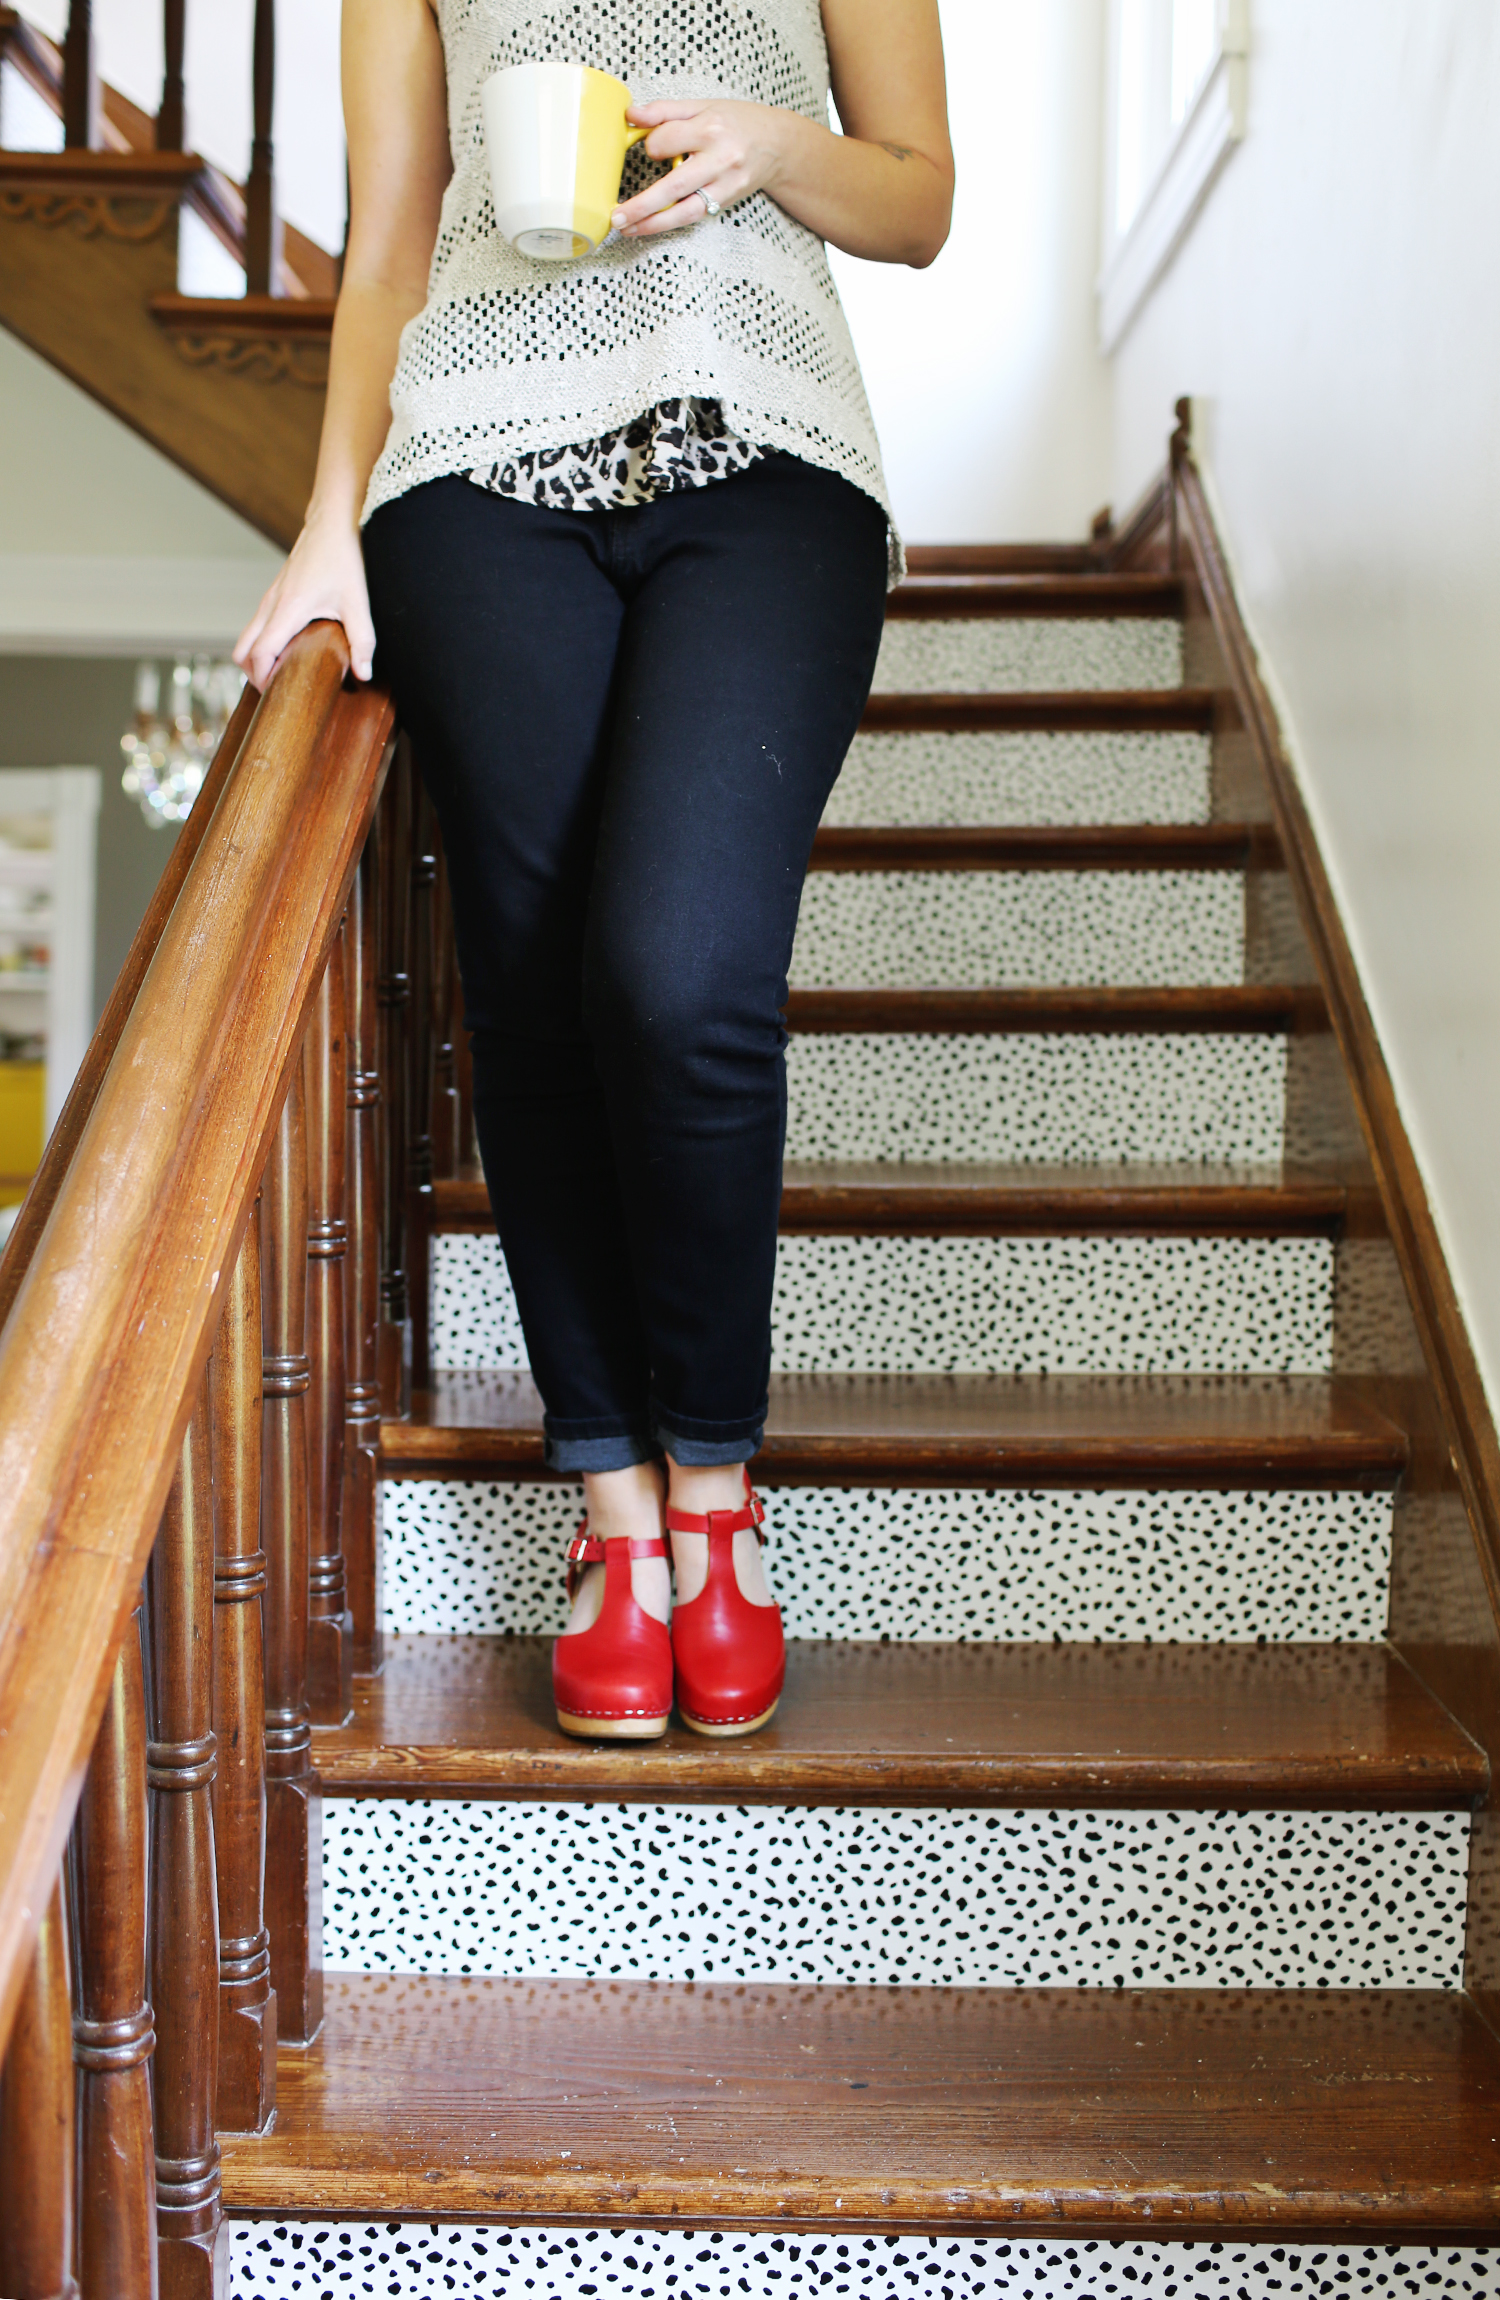 Customize Stairs With Removable Wallpaper Renter Friendly